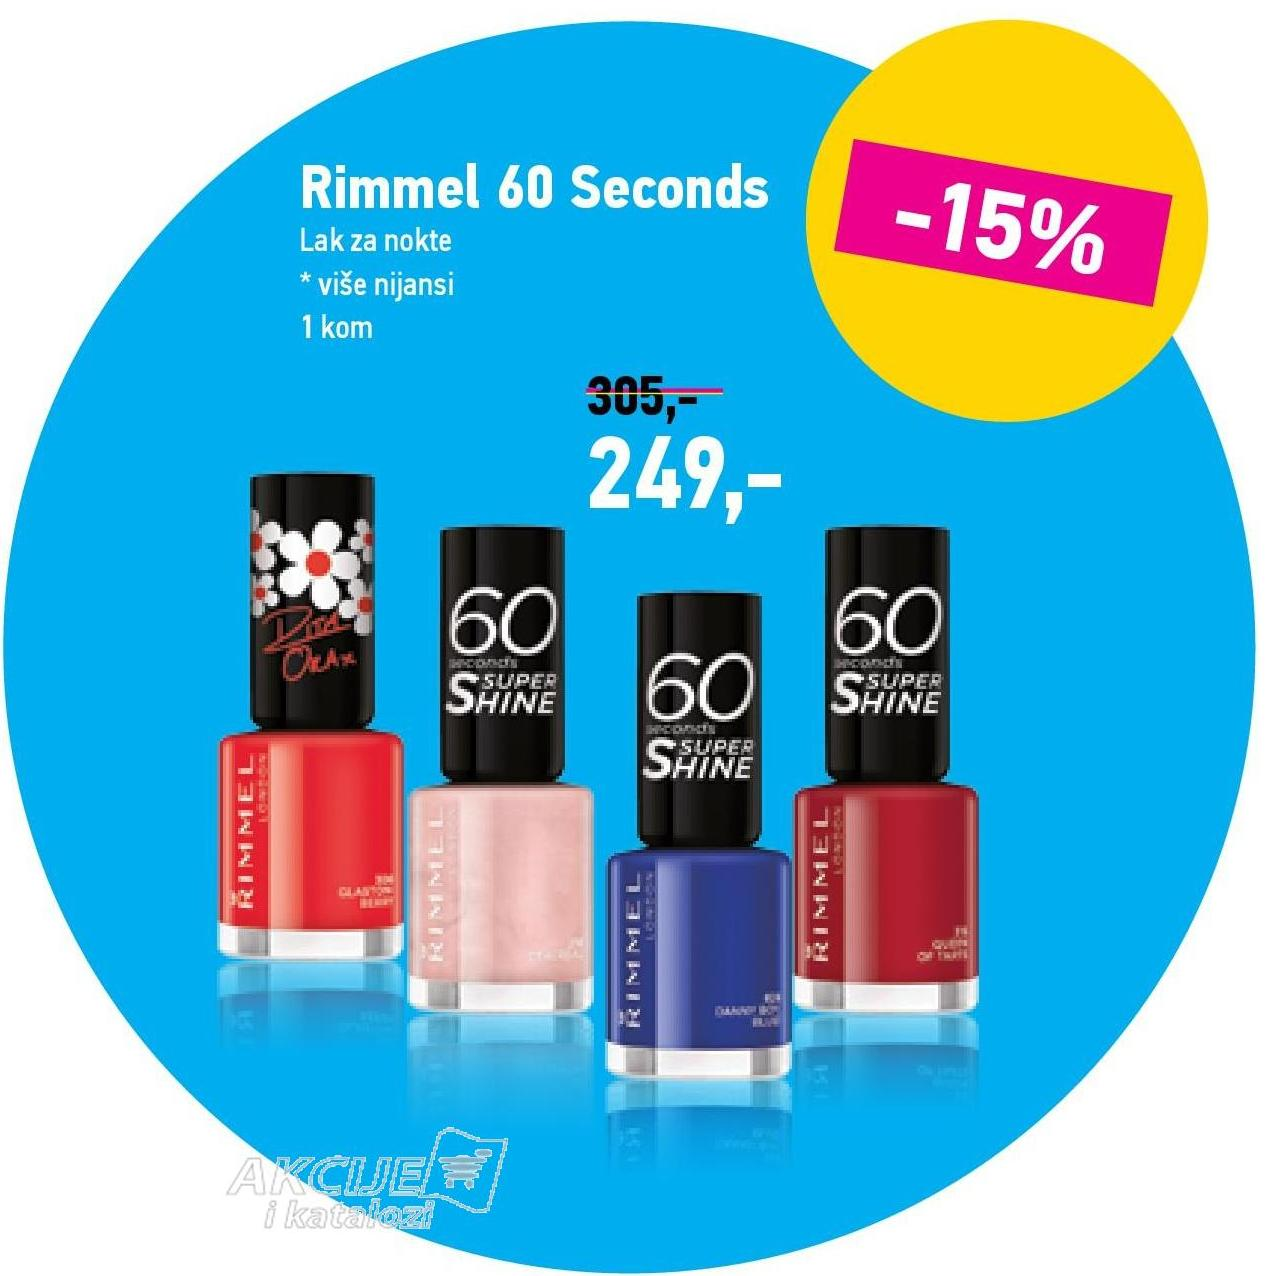 Akcija Lilly Rimmel Lak Za Nokte 60 Seconds 683745